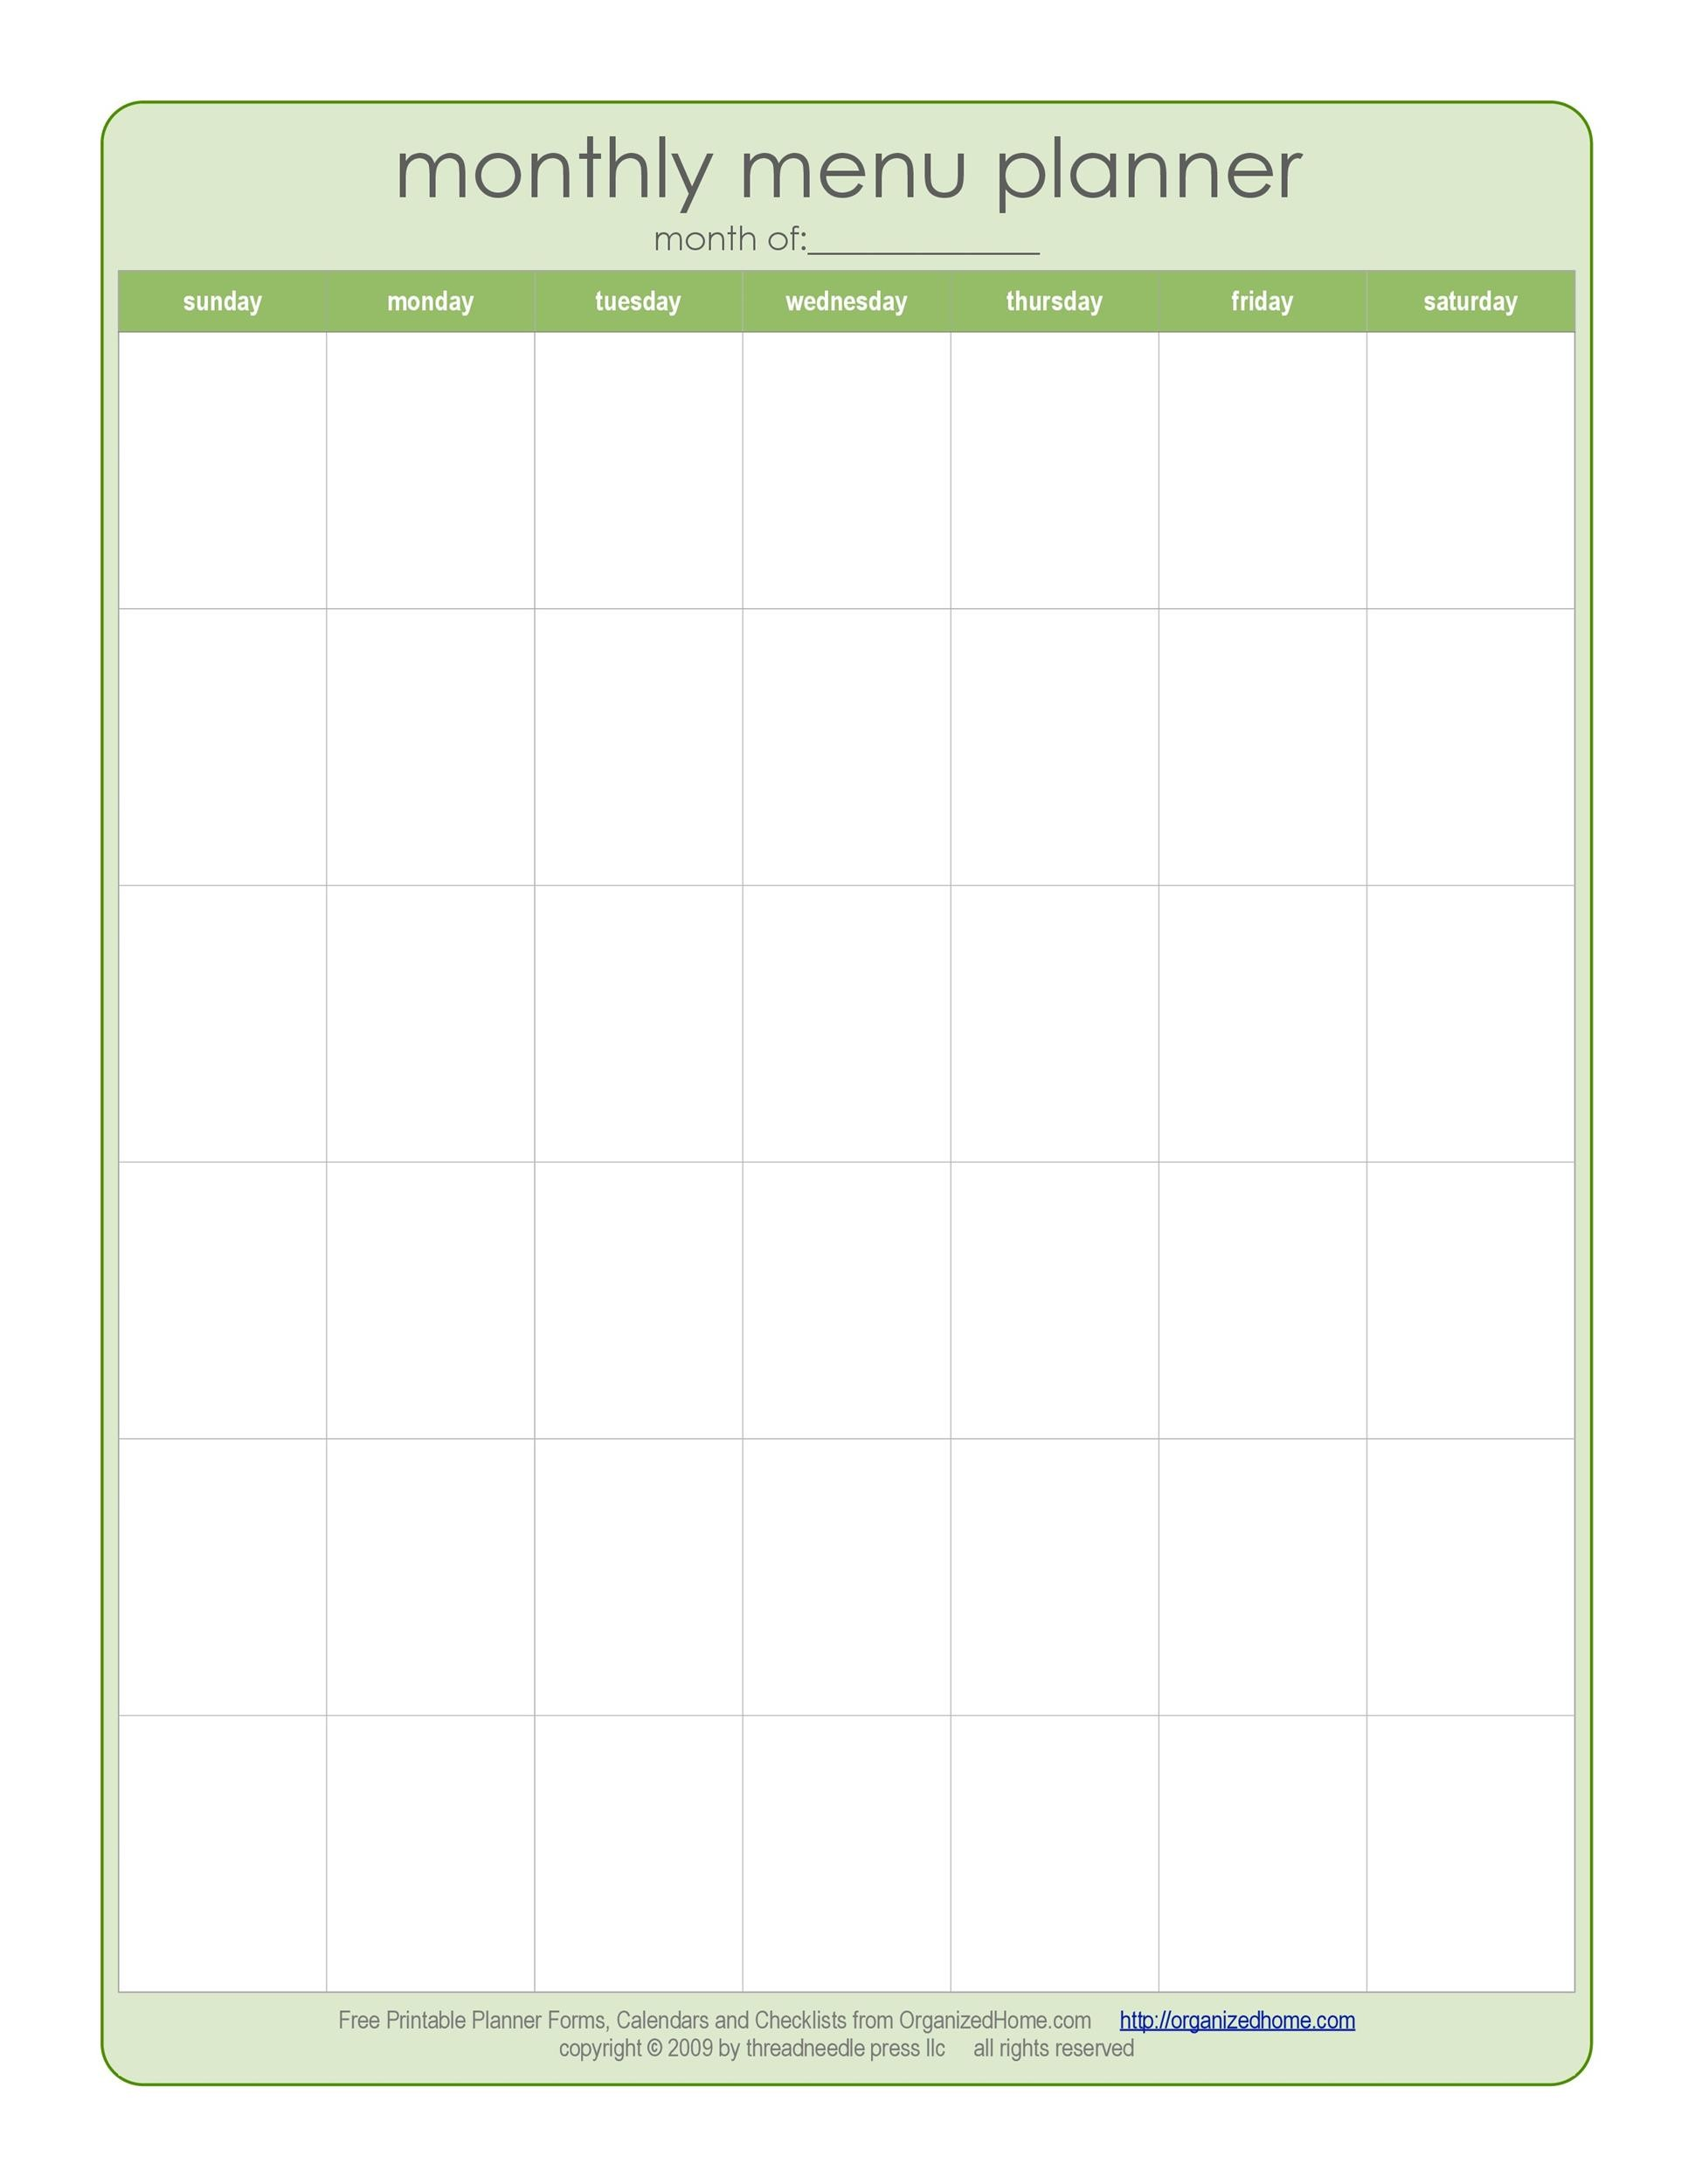 40+ Weekly Meal Planning Templates - Template Lab - online menu planner free